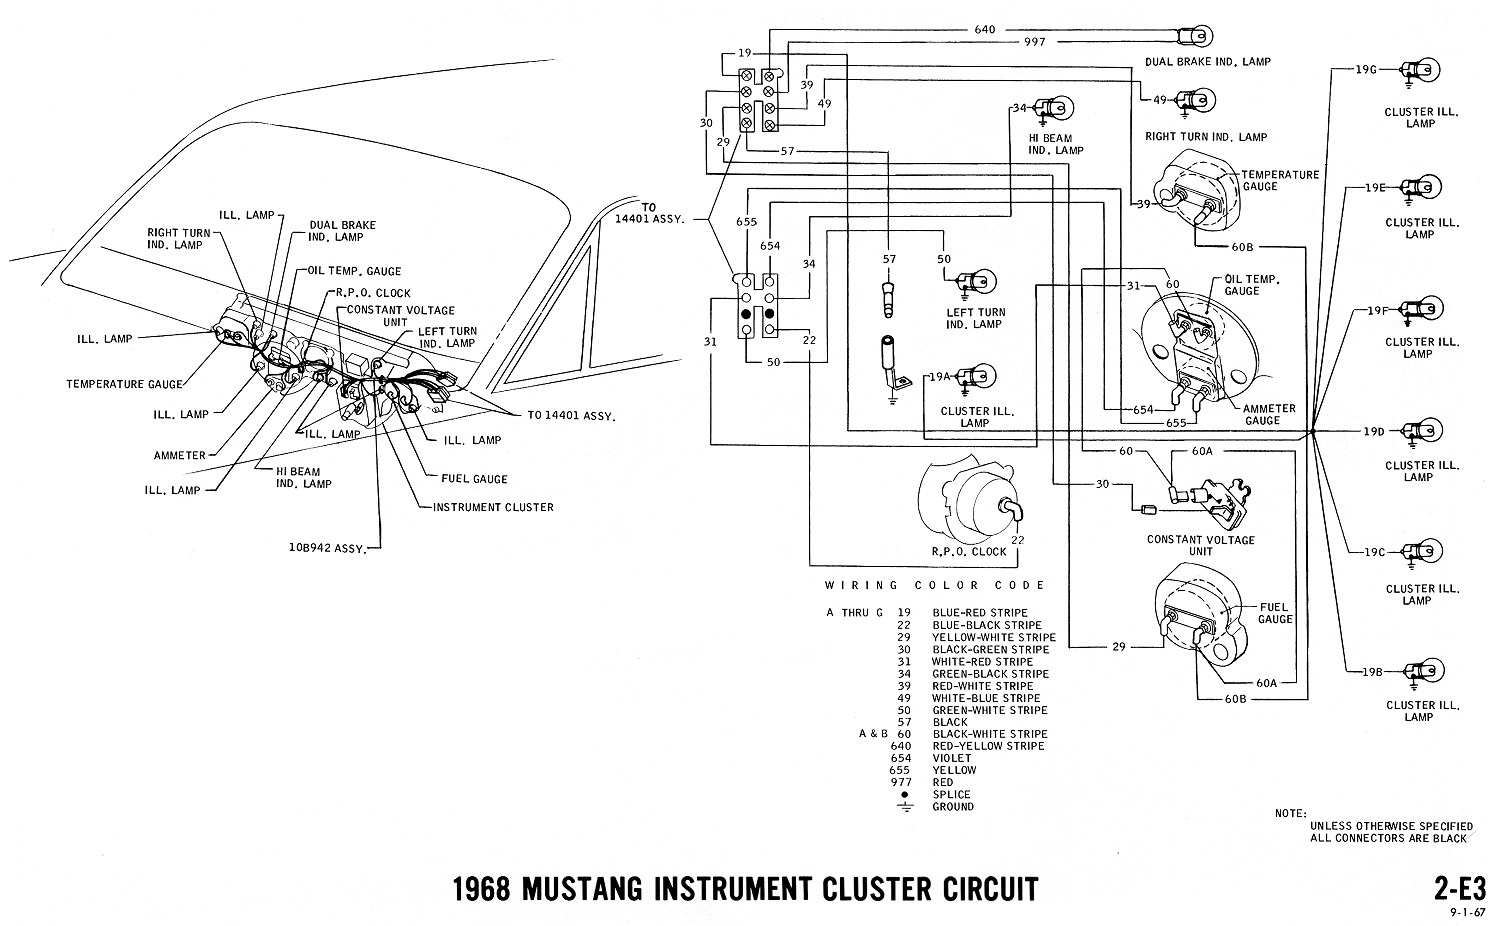 1968 coronet wiring diagram, Wiring diagram